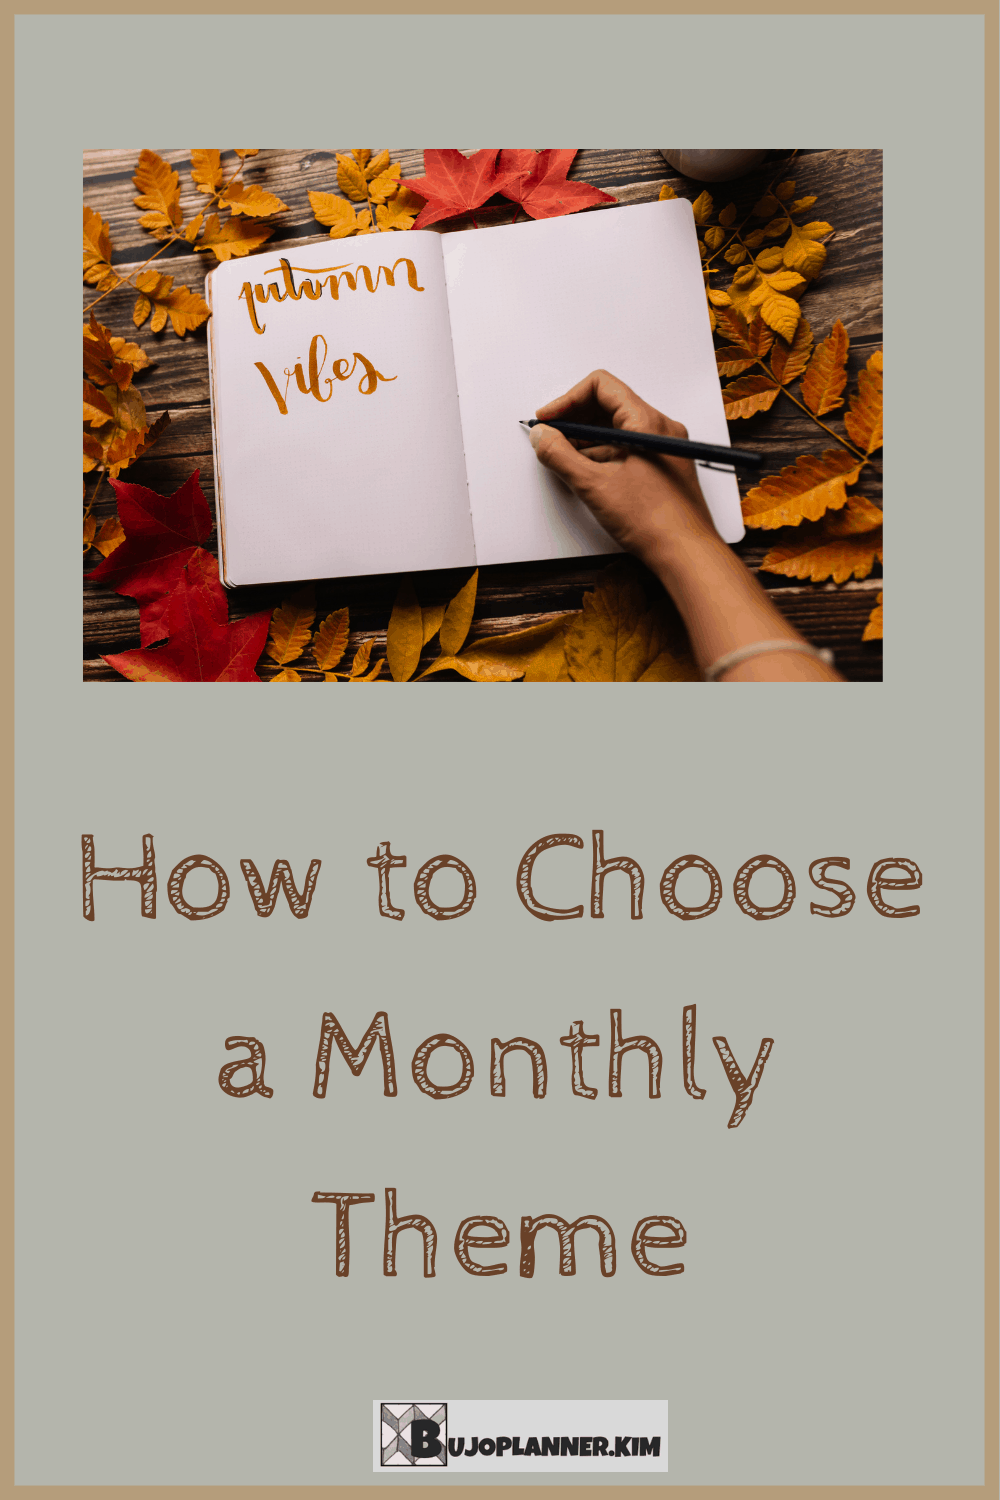 Picture of bullet journal. On one page it says 'autumn vibes'. The picture title says 'how to choose a monthly theme.